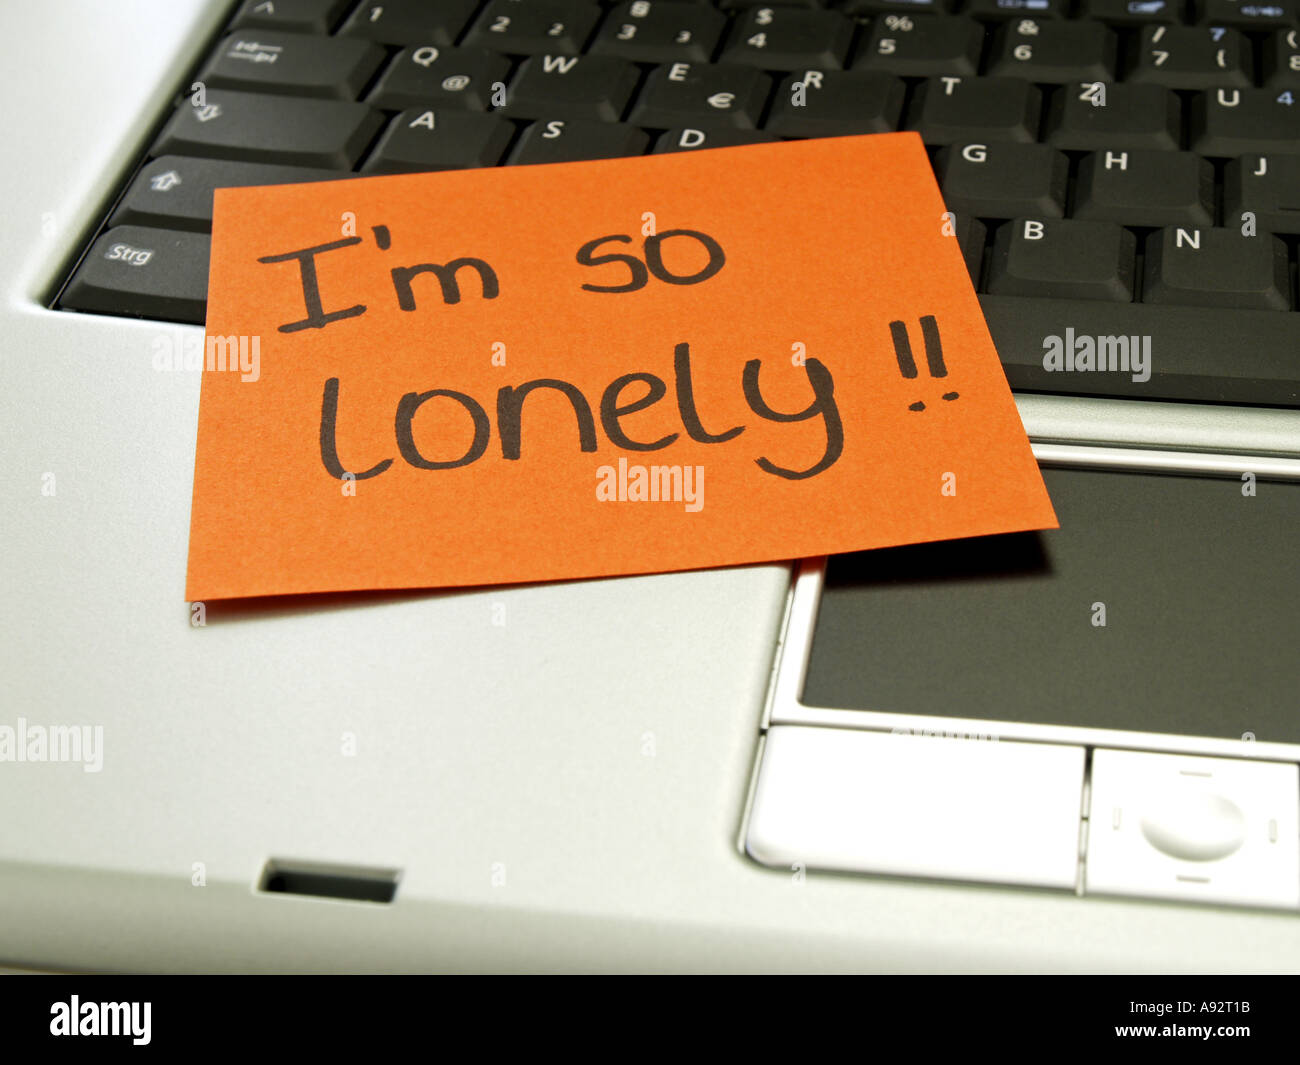 m so lonely